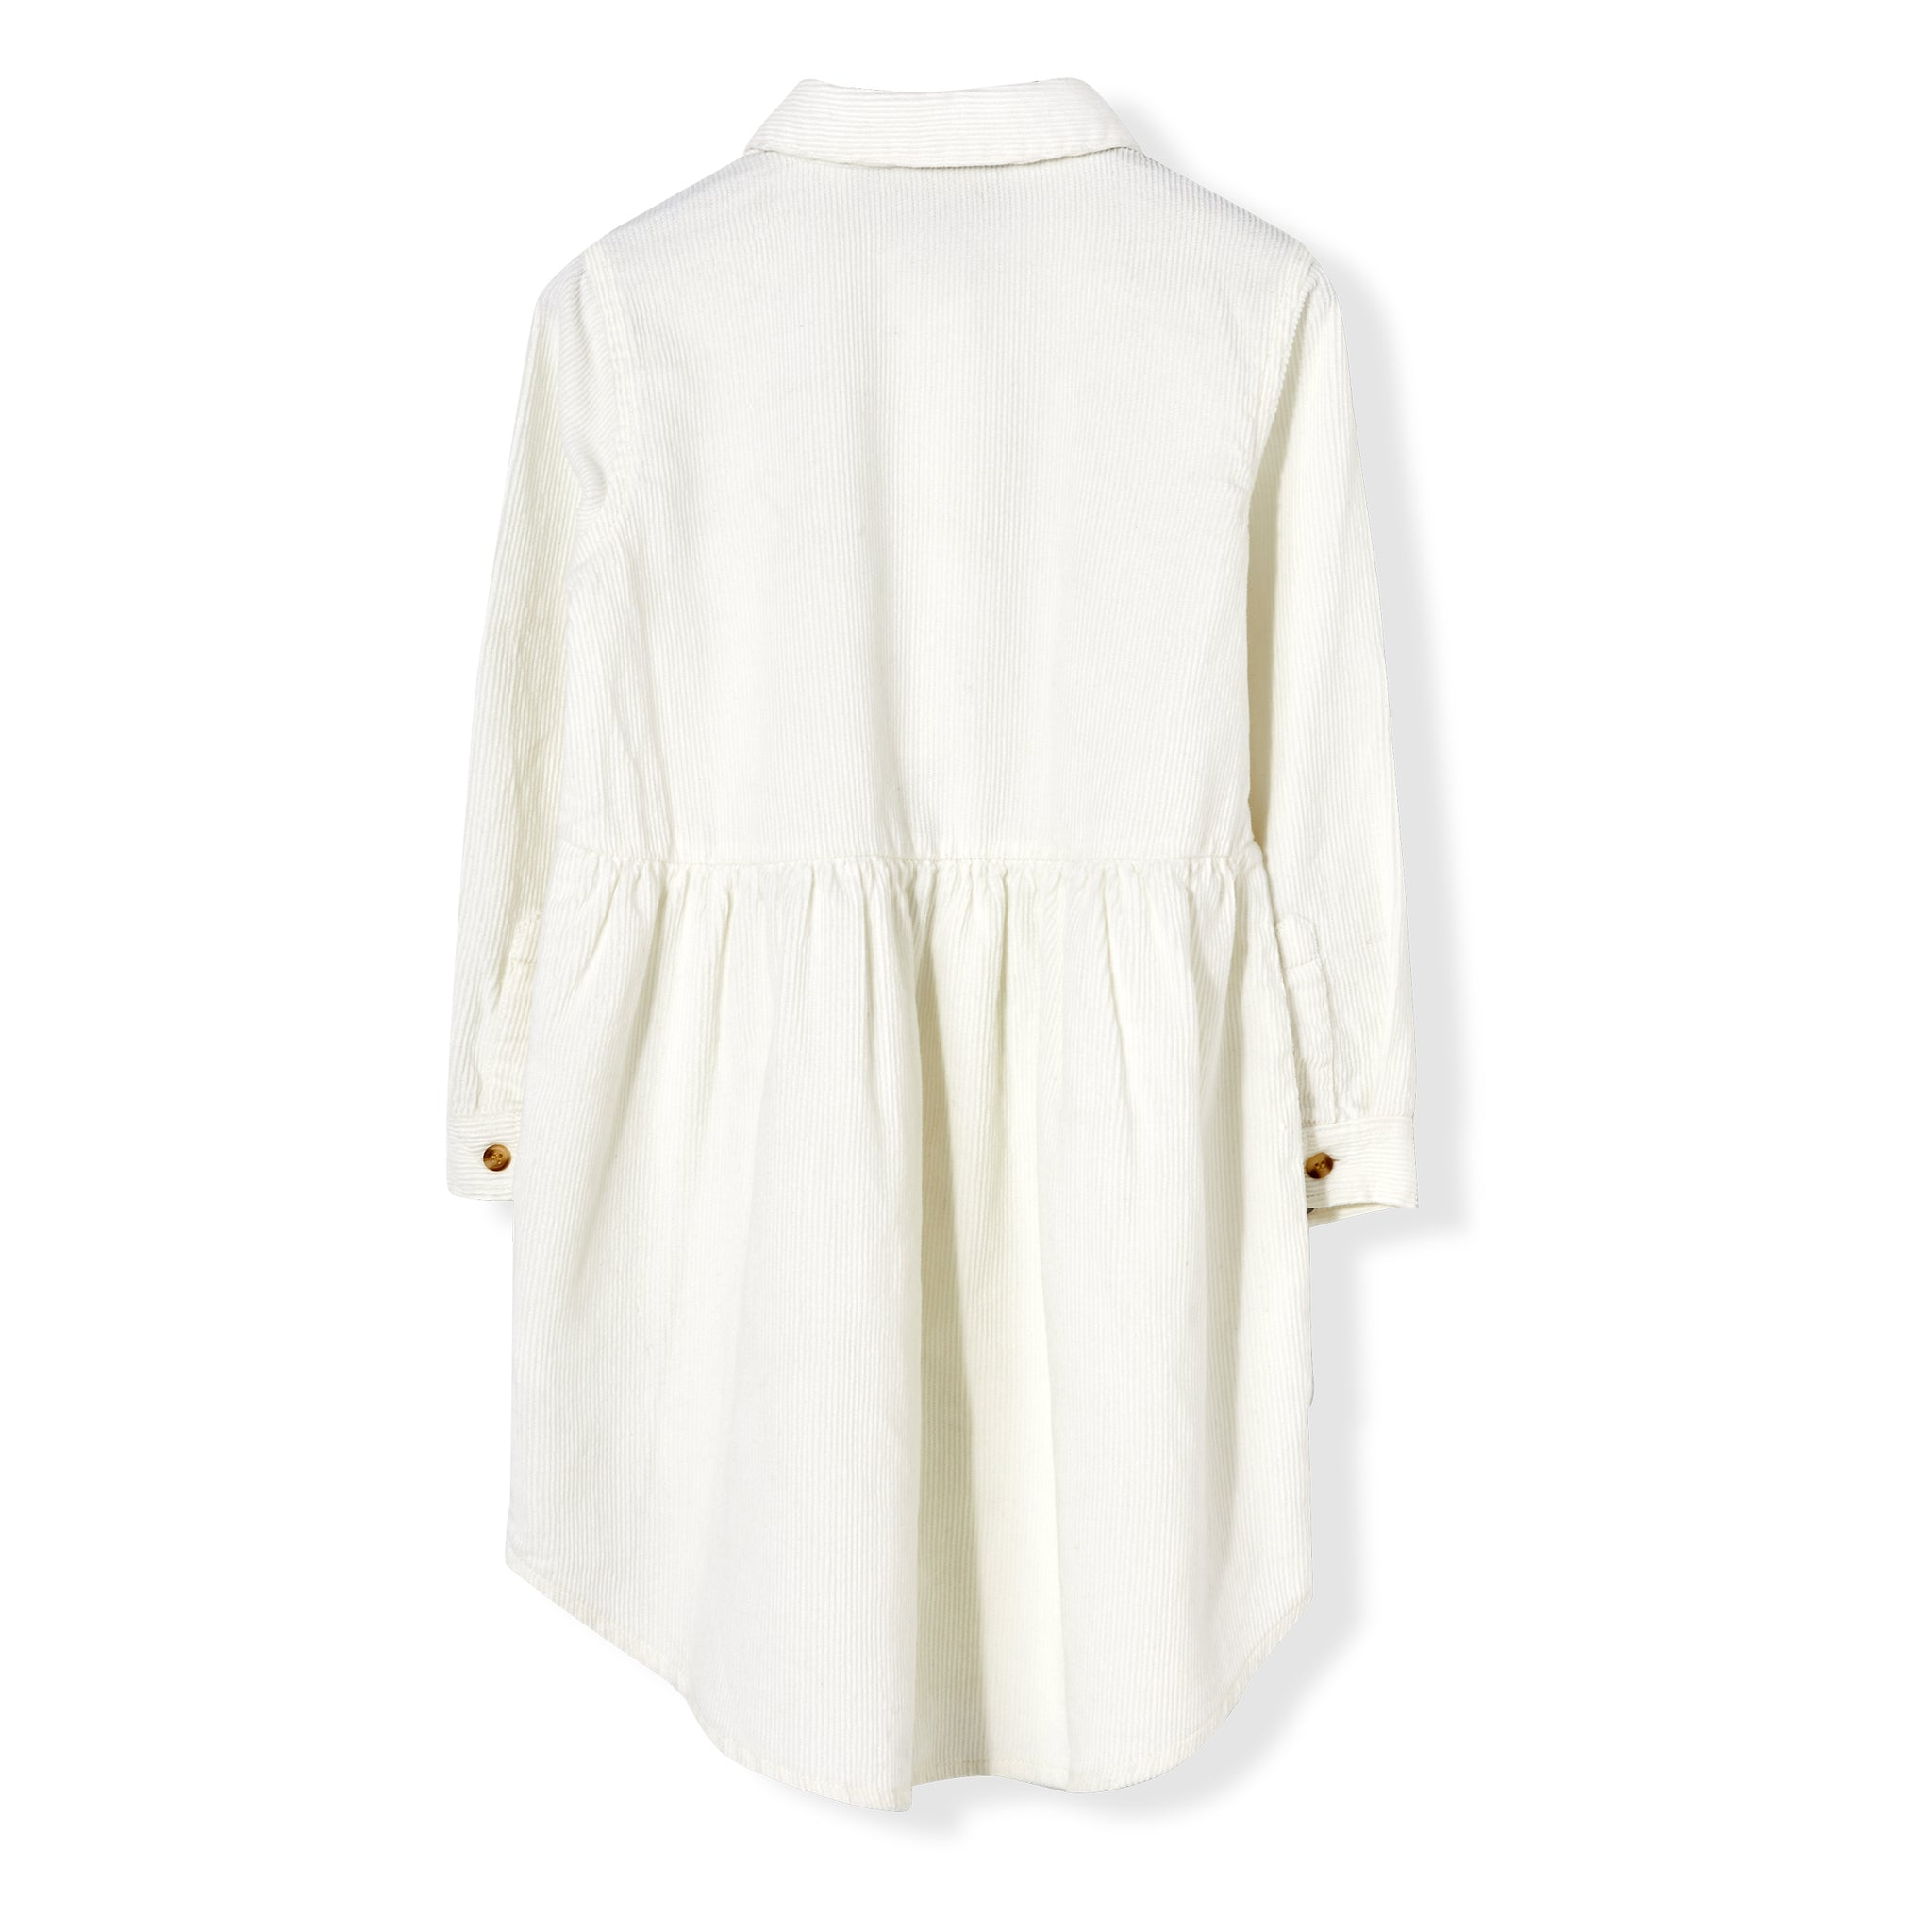 DARLIN Off White Cord - Long Sleeve Dress 3